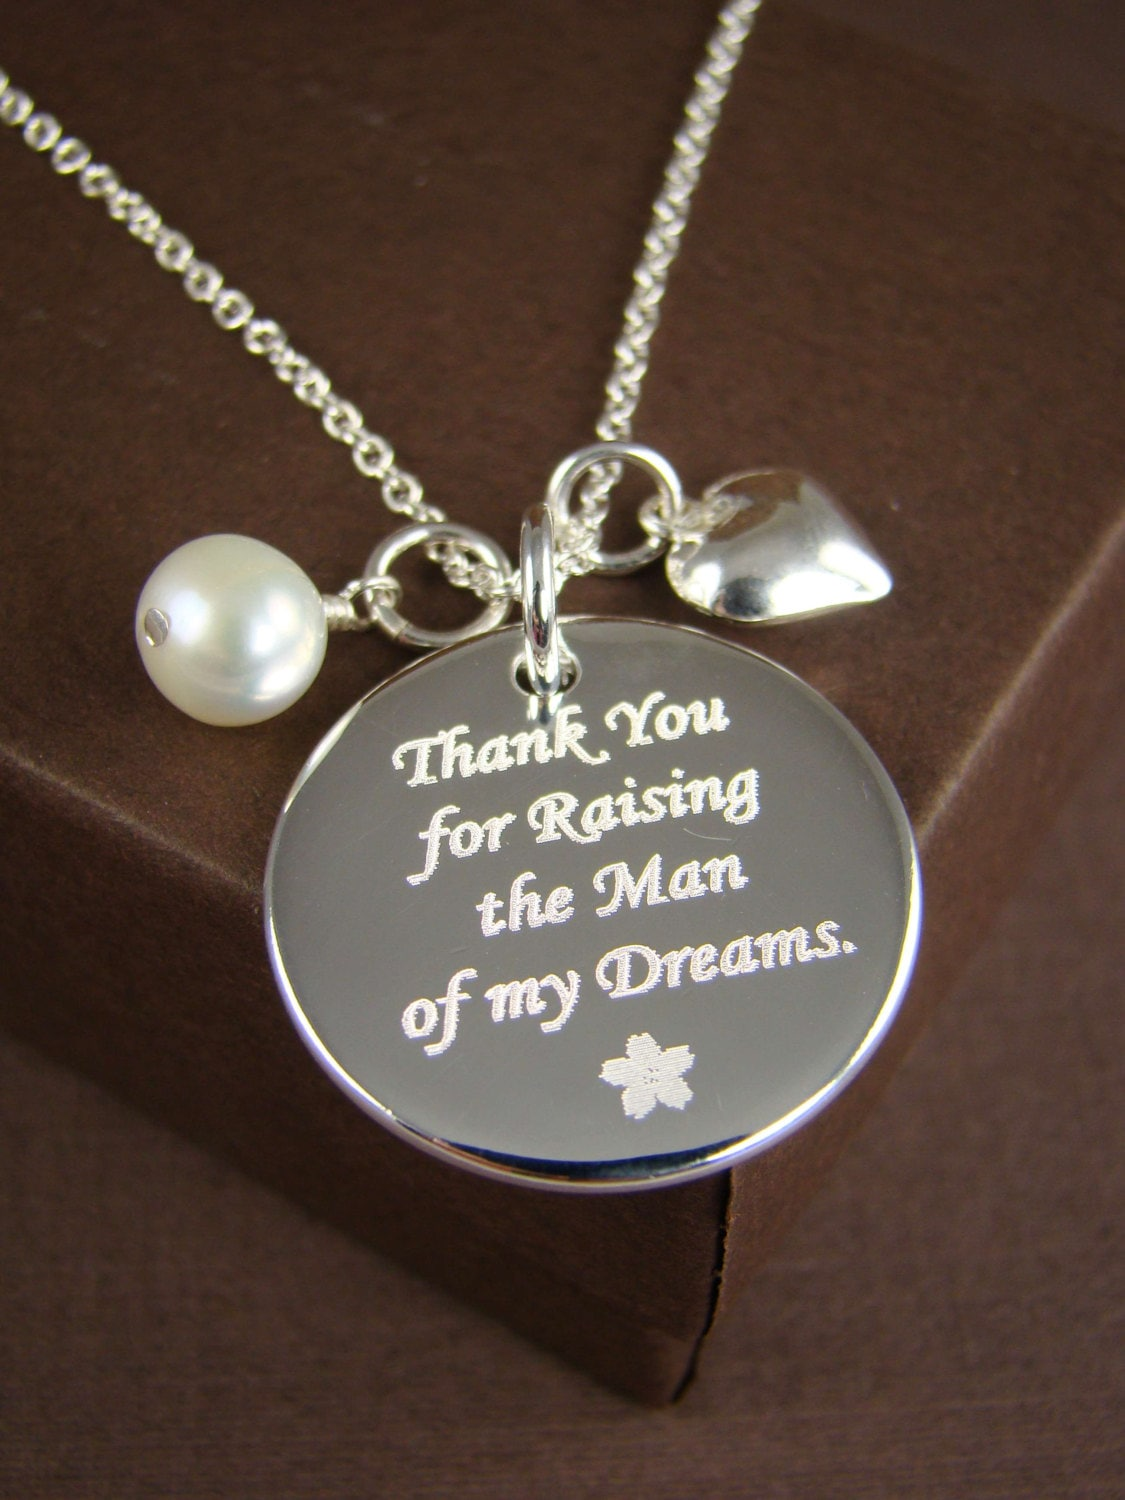 Gifts For The Groom From The Bride: Wedding Gift For Mother Of The Groom Mother Of The Bride